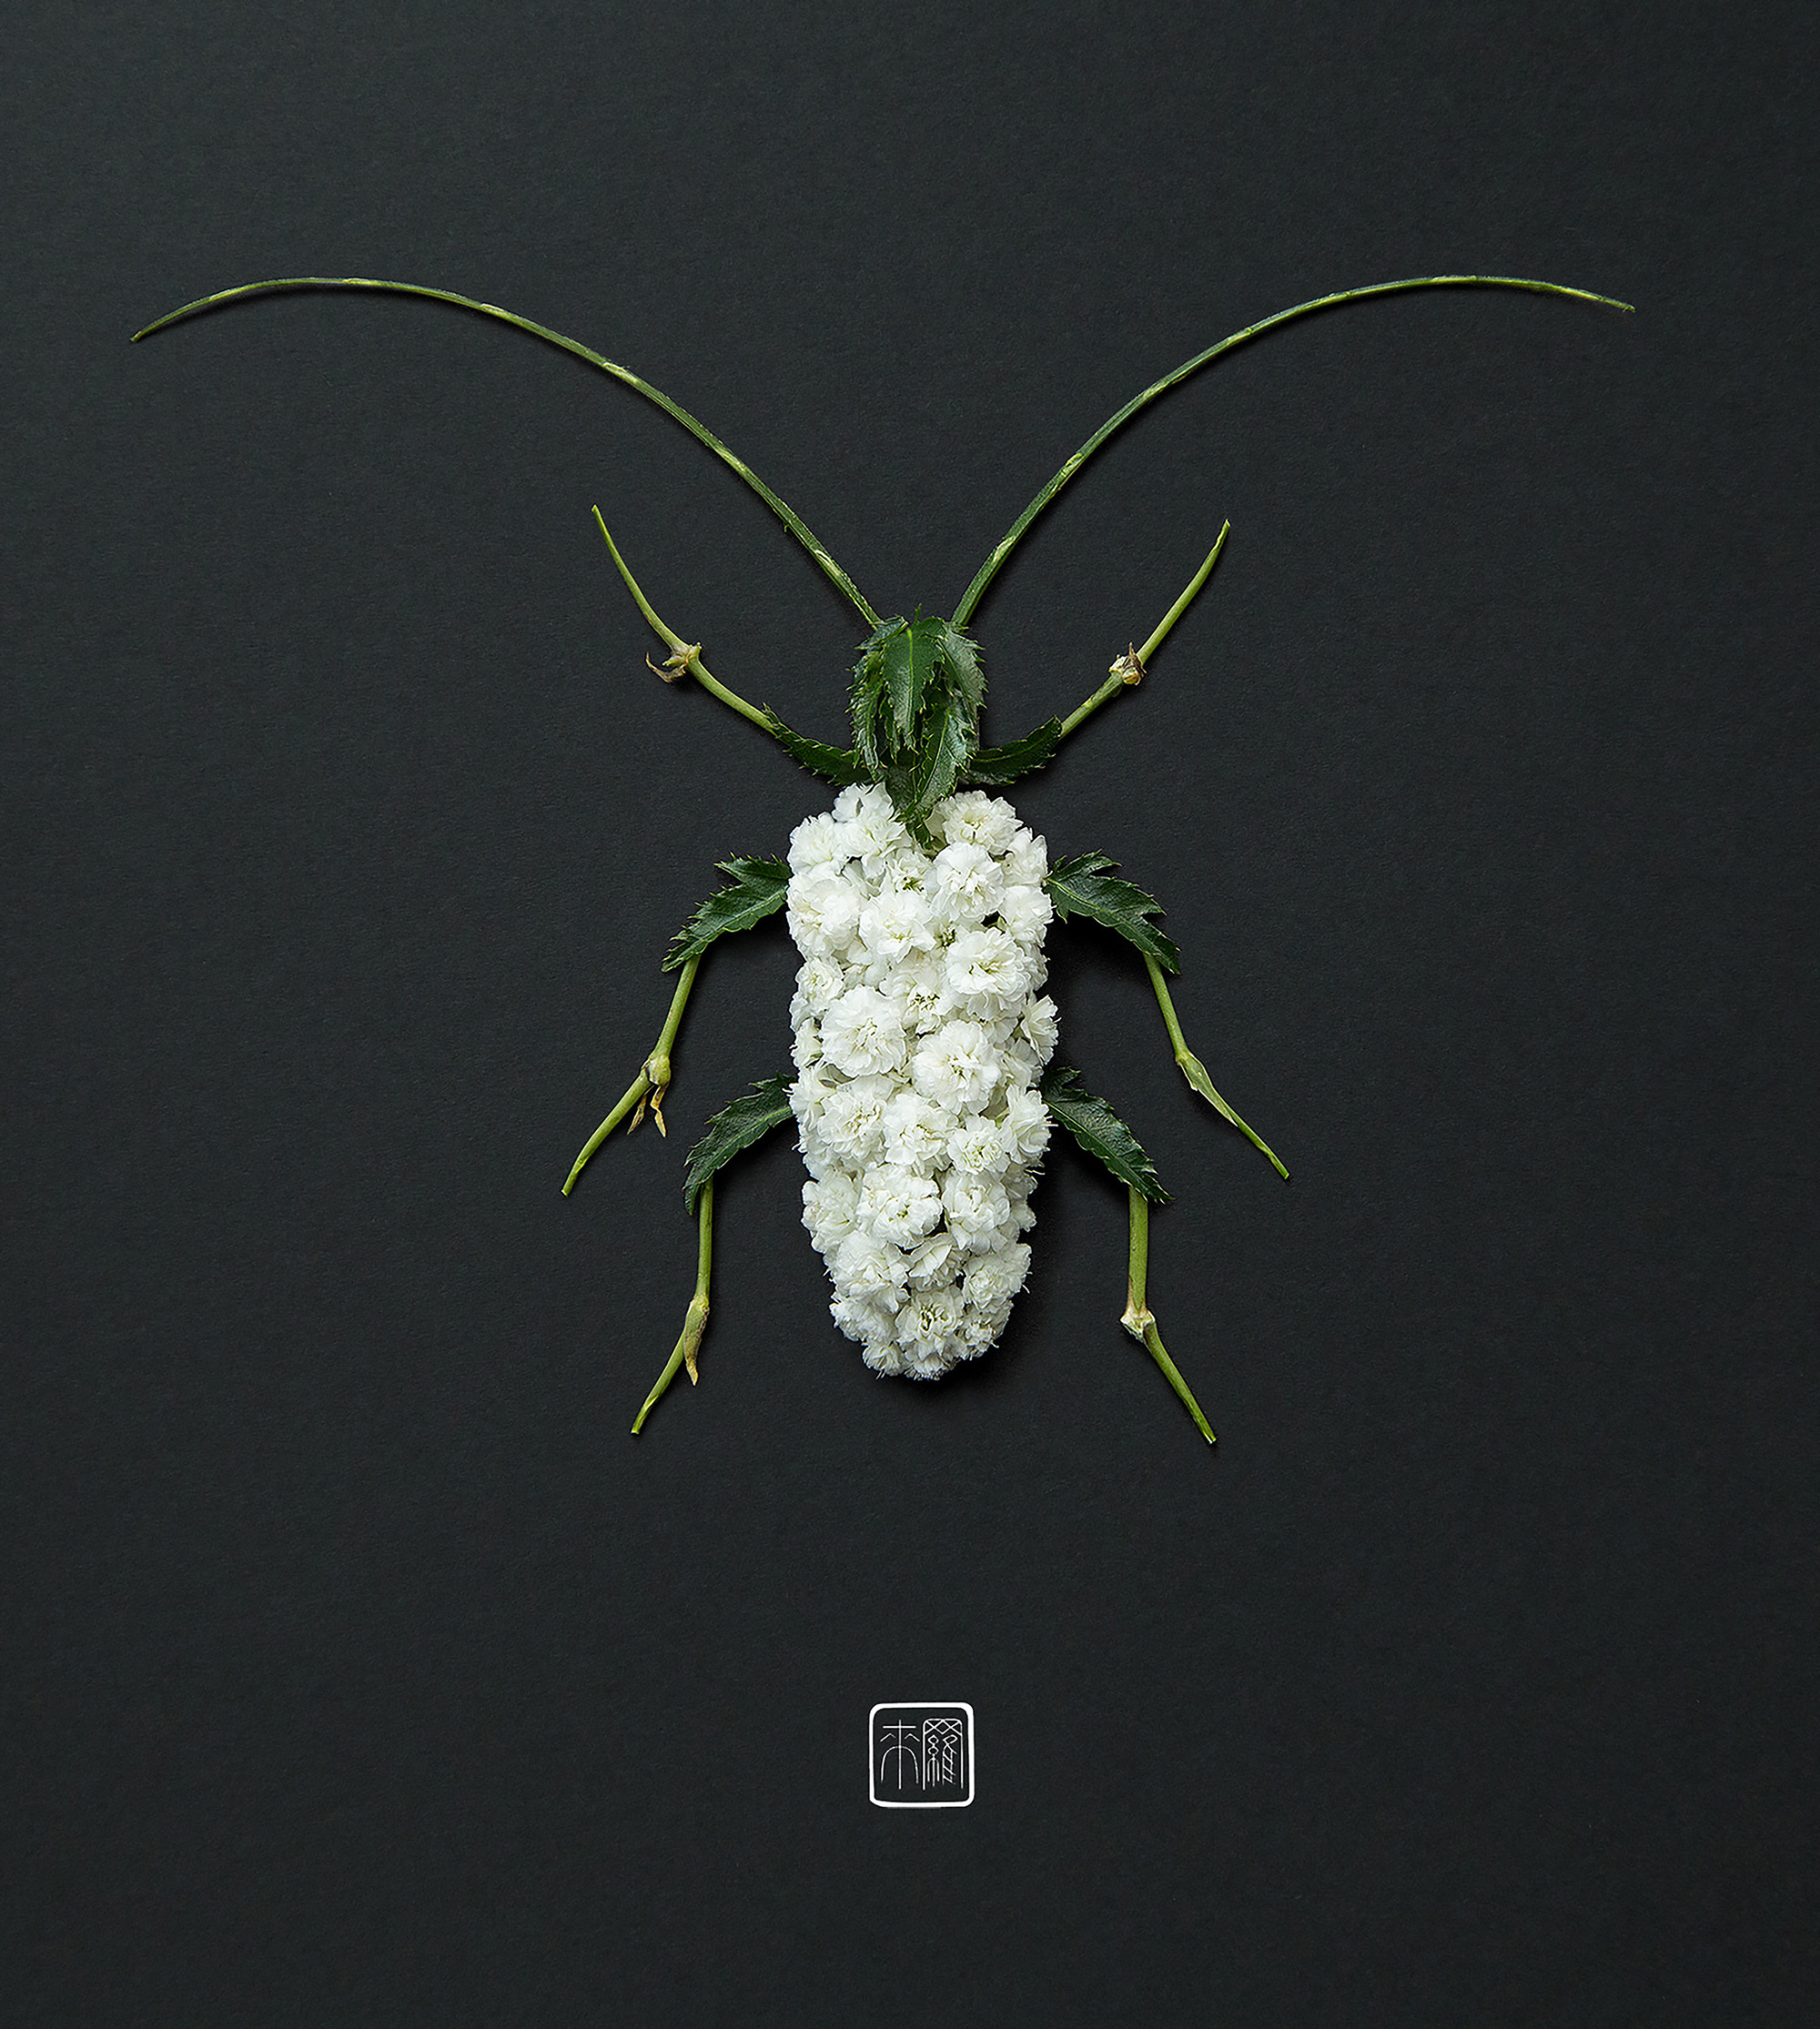 Flower Petals and Stems Transform into Animals and Insects in Inventive new Arrangements